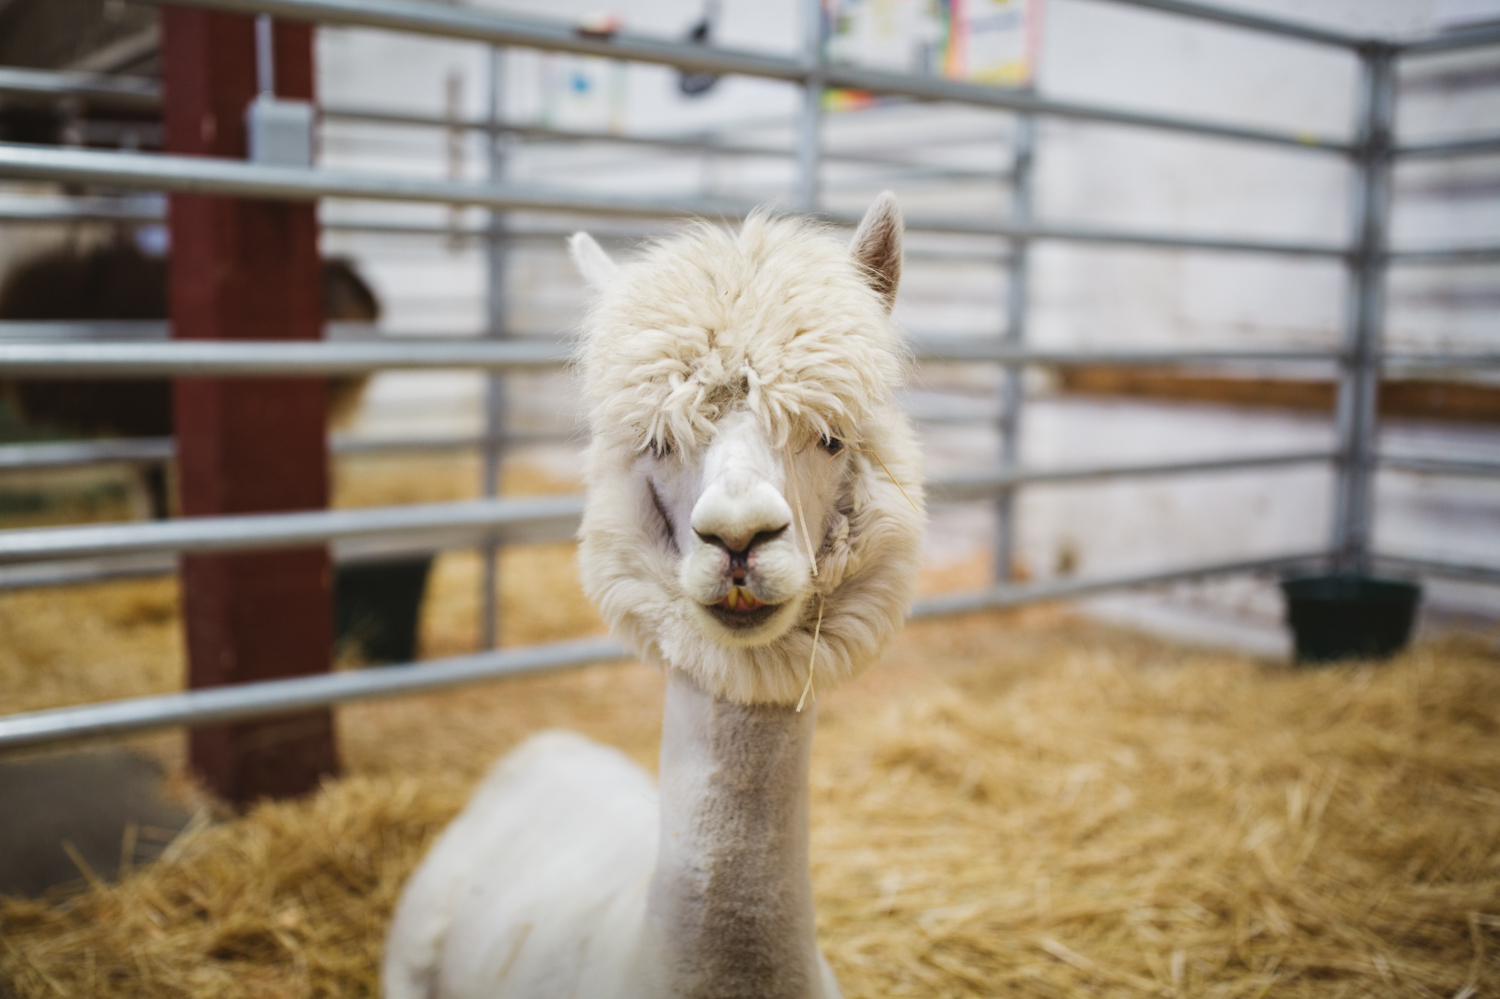 The Washington State Fair boasts an impressive array of farm animals, and we managed to make our way inside to see what cuteness we could find! Bunnies, goats, llamas, cows, and pigs filled the stables, and with a variety of personalities, it is definitely worth your time to meet some of these furry friends. (Image: Ryan McBoyle / Seattle Refined)